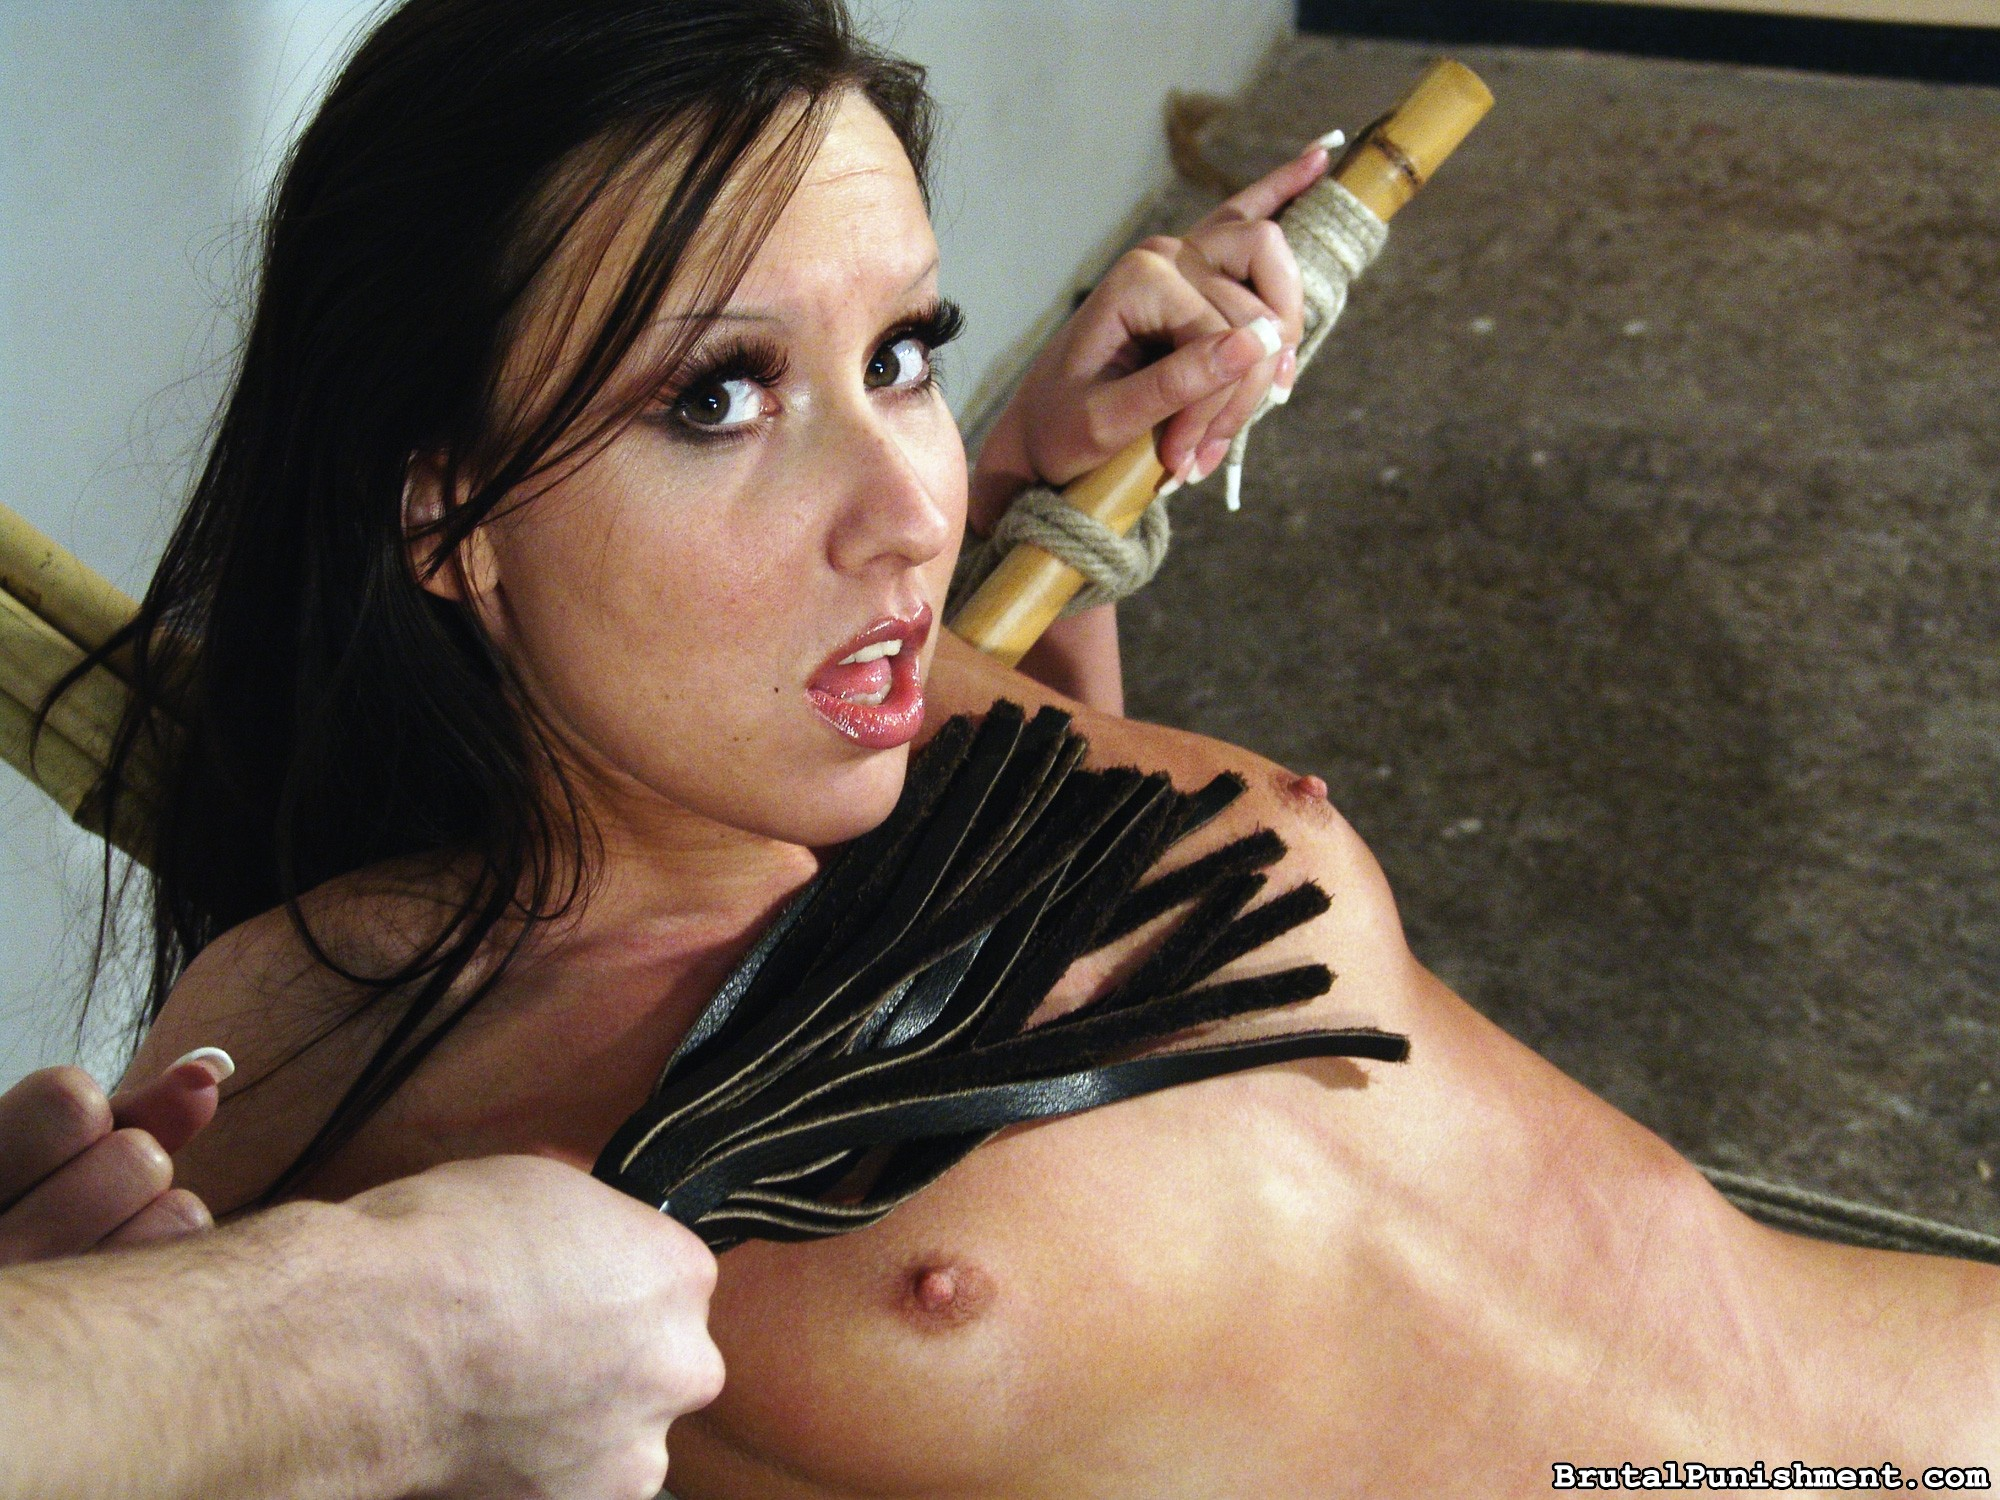 Crazy Agony Fuckslut Nicole Suffers Every Other Restrain Bondage Consultation